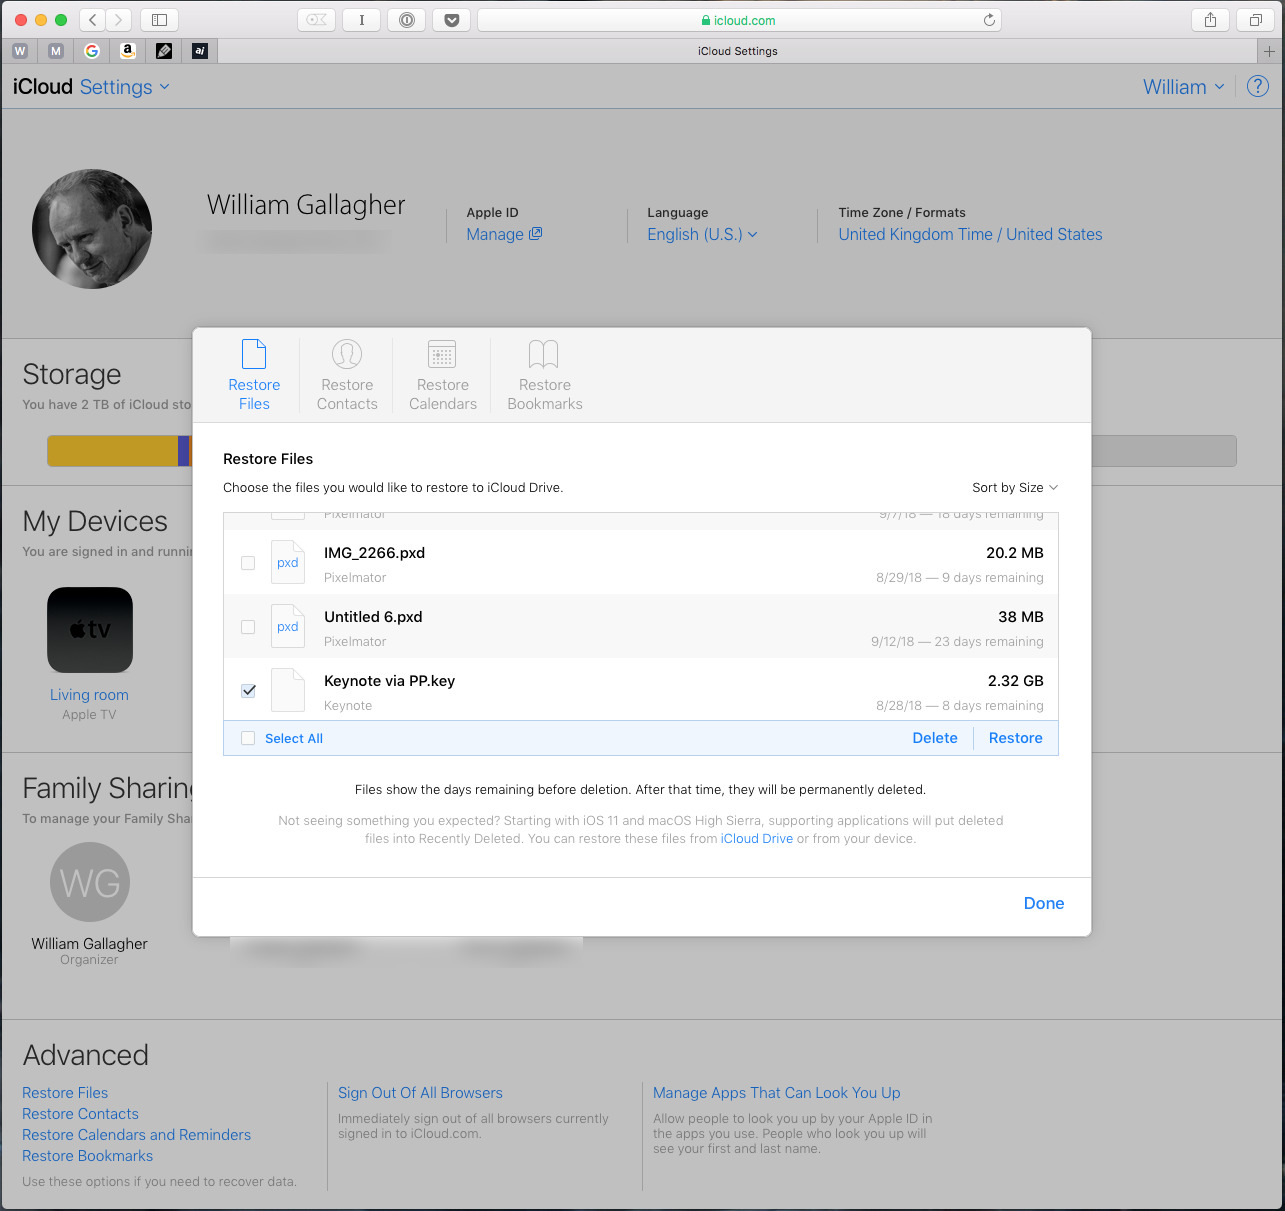 Restoring a file from iCloud